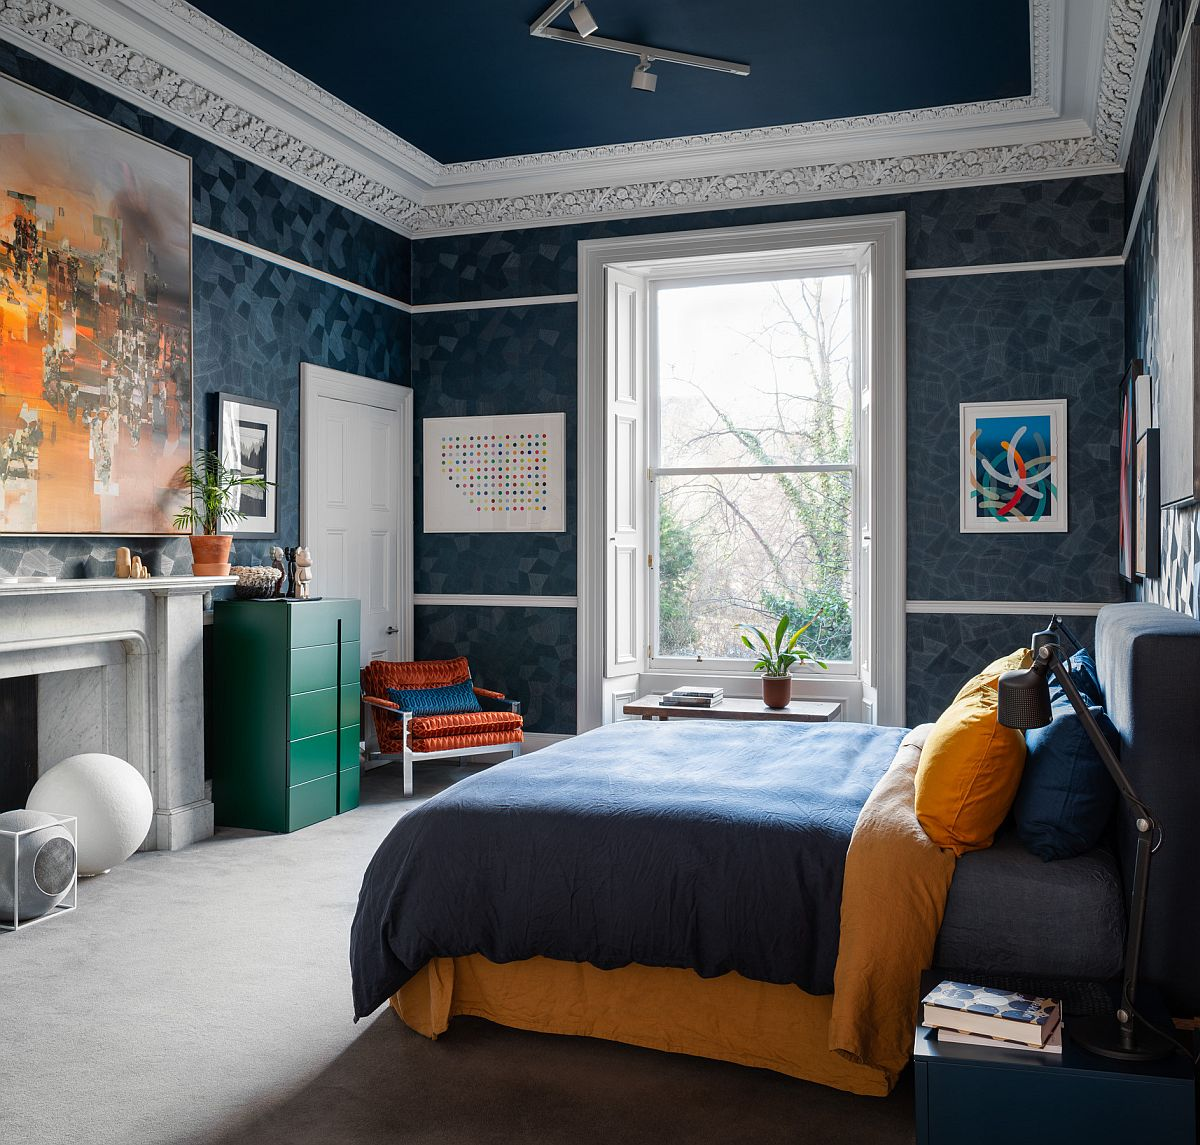 Finding a blend of color and pattern that is perfect for the teen boys' bedroom